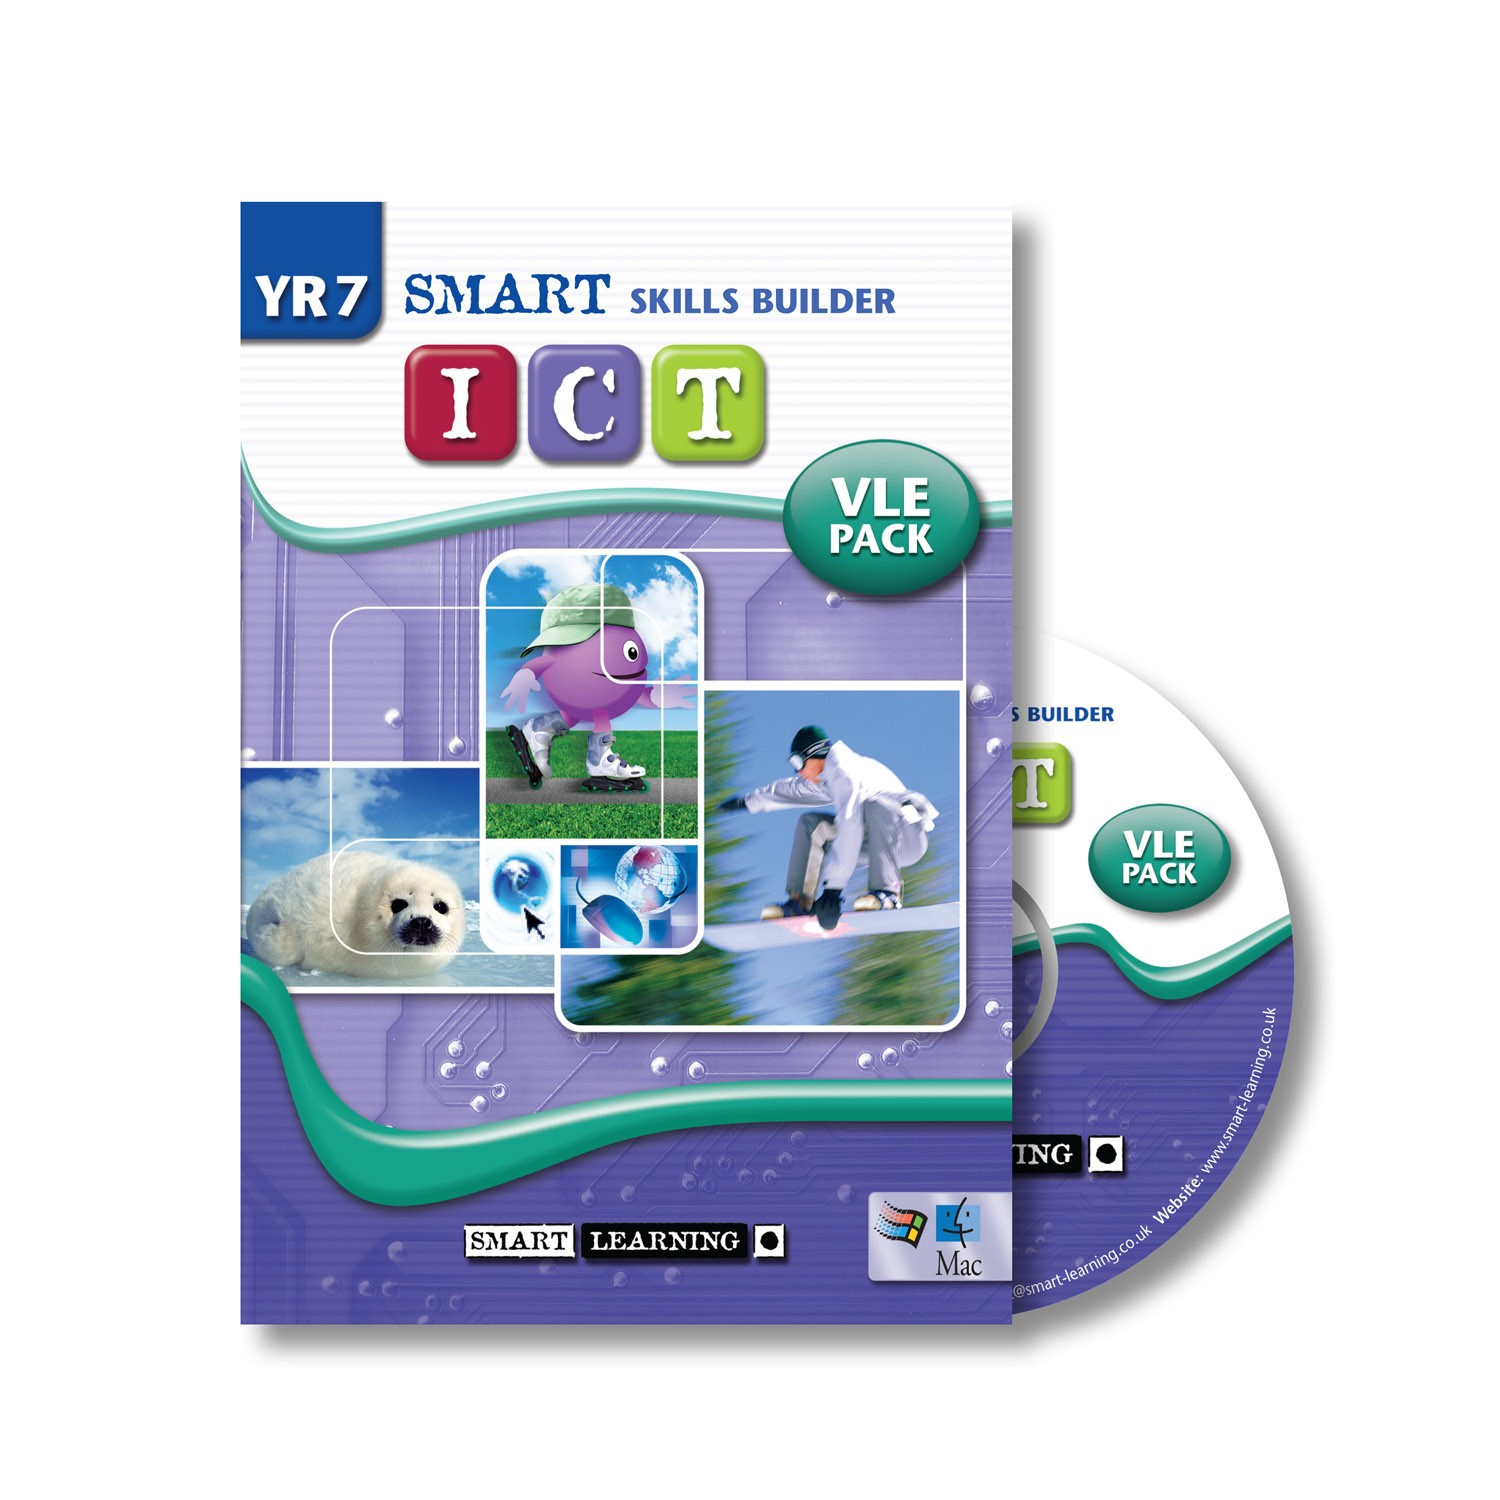 Smart Skills Builder Ict Y7 Ict Vle Pack